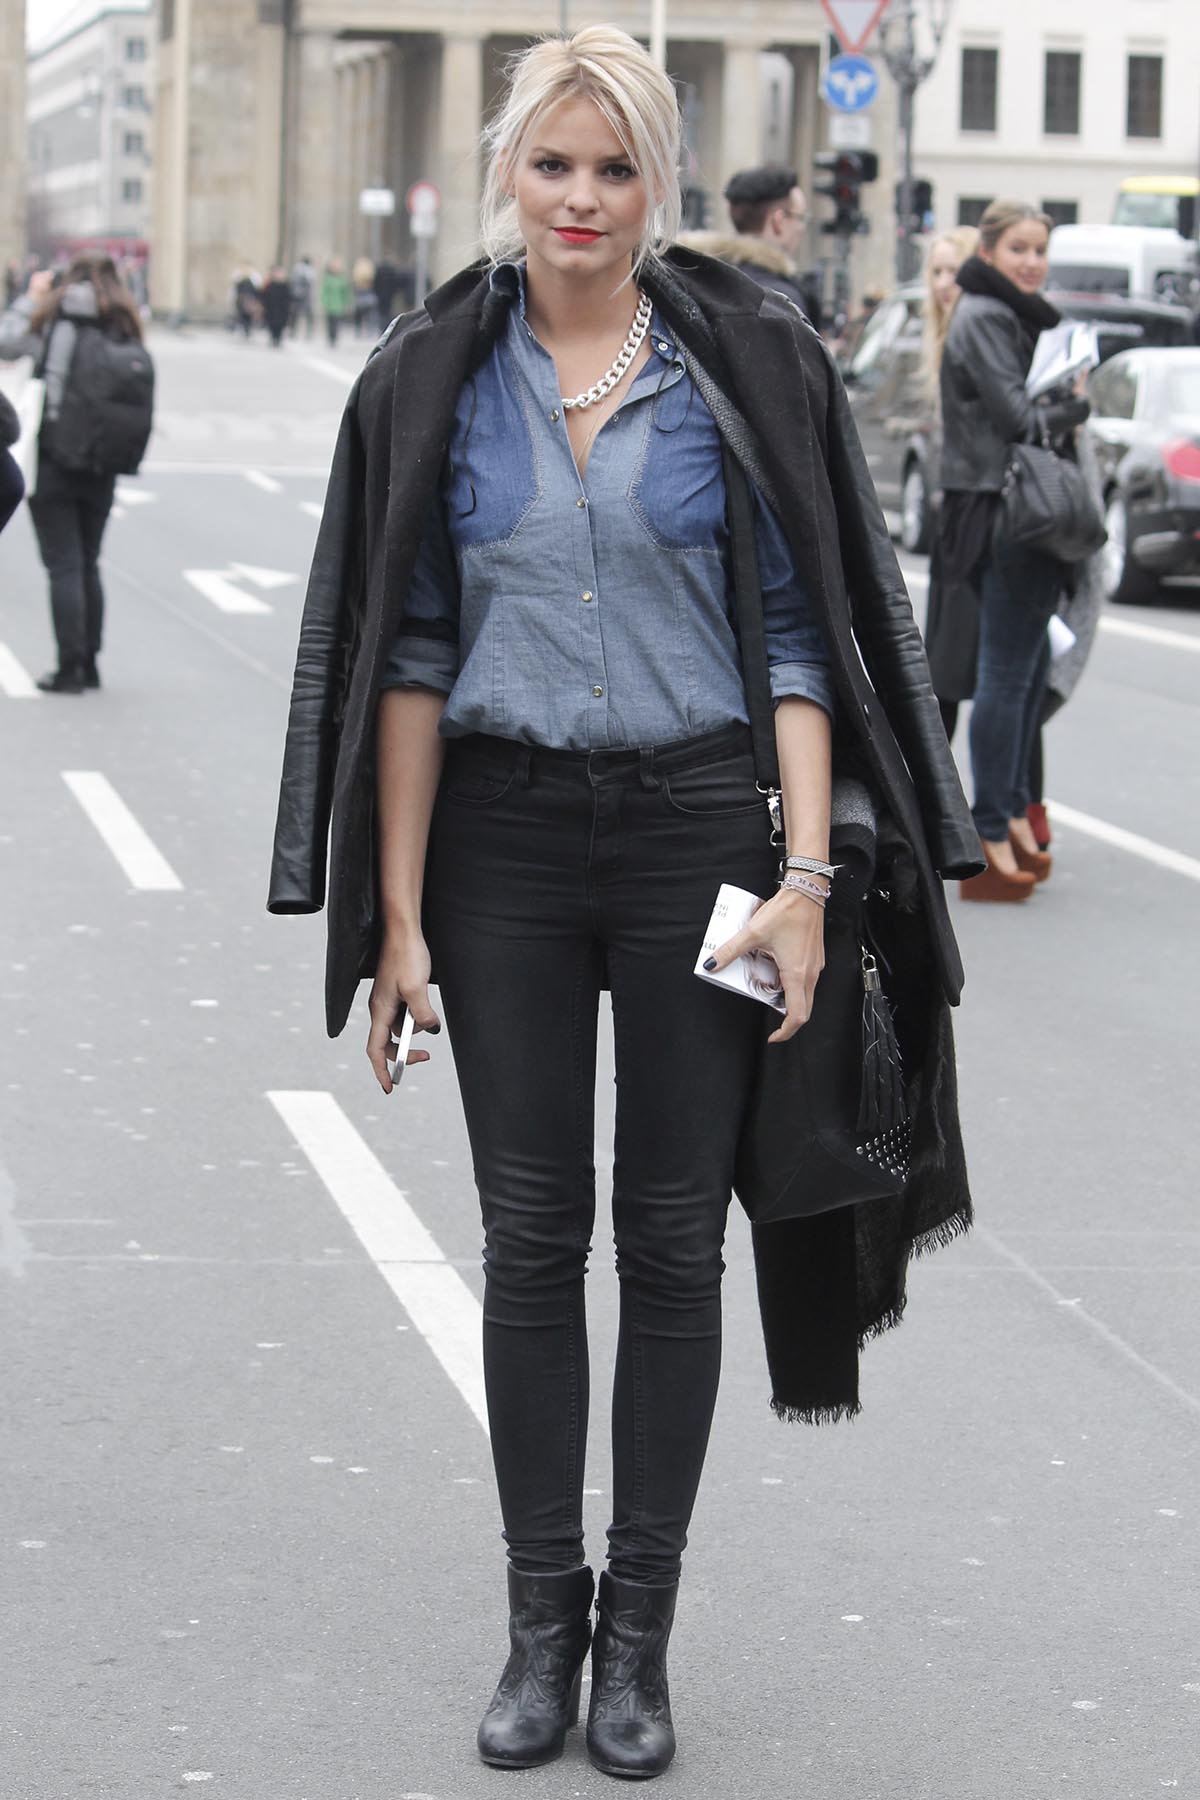 MM_Streetstyle_Tag2